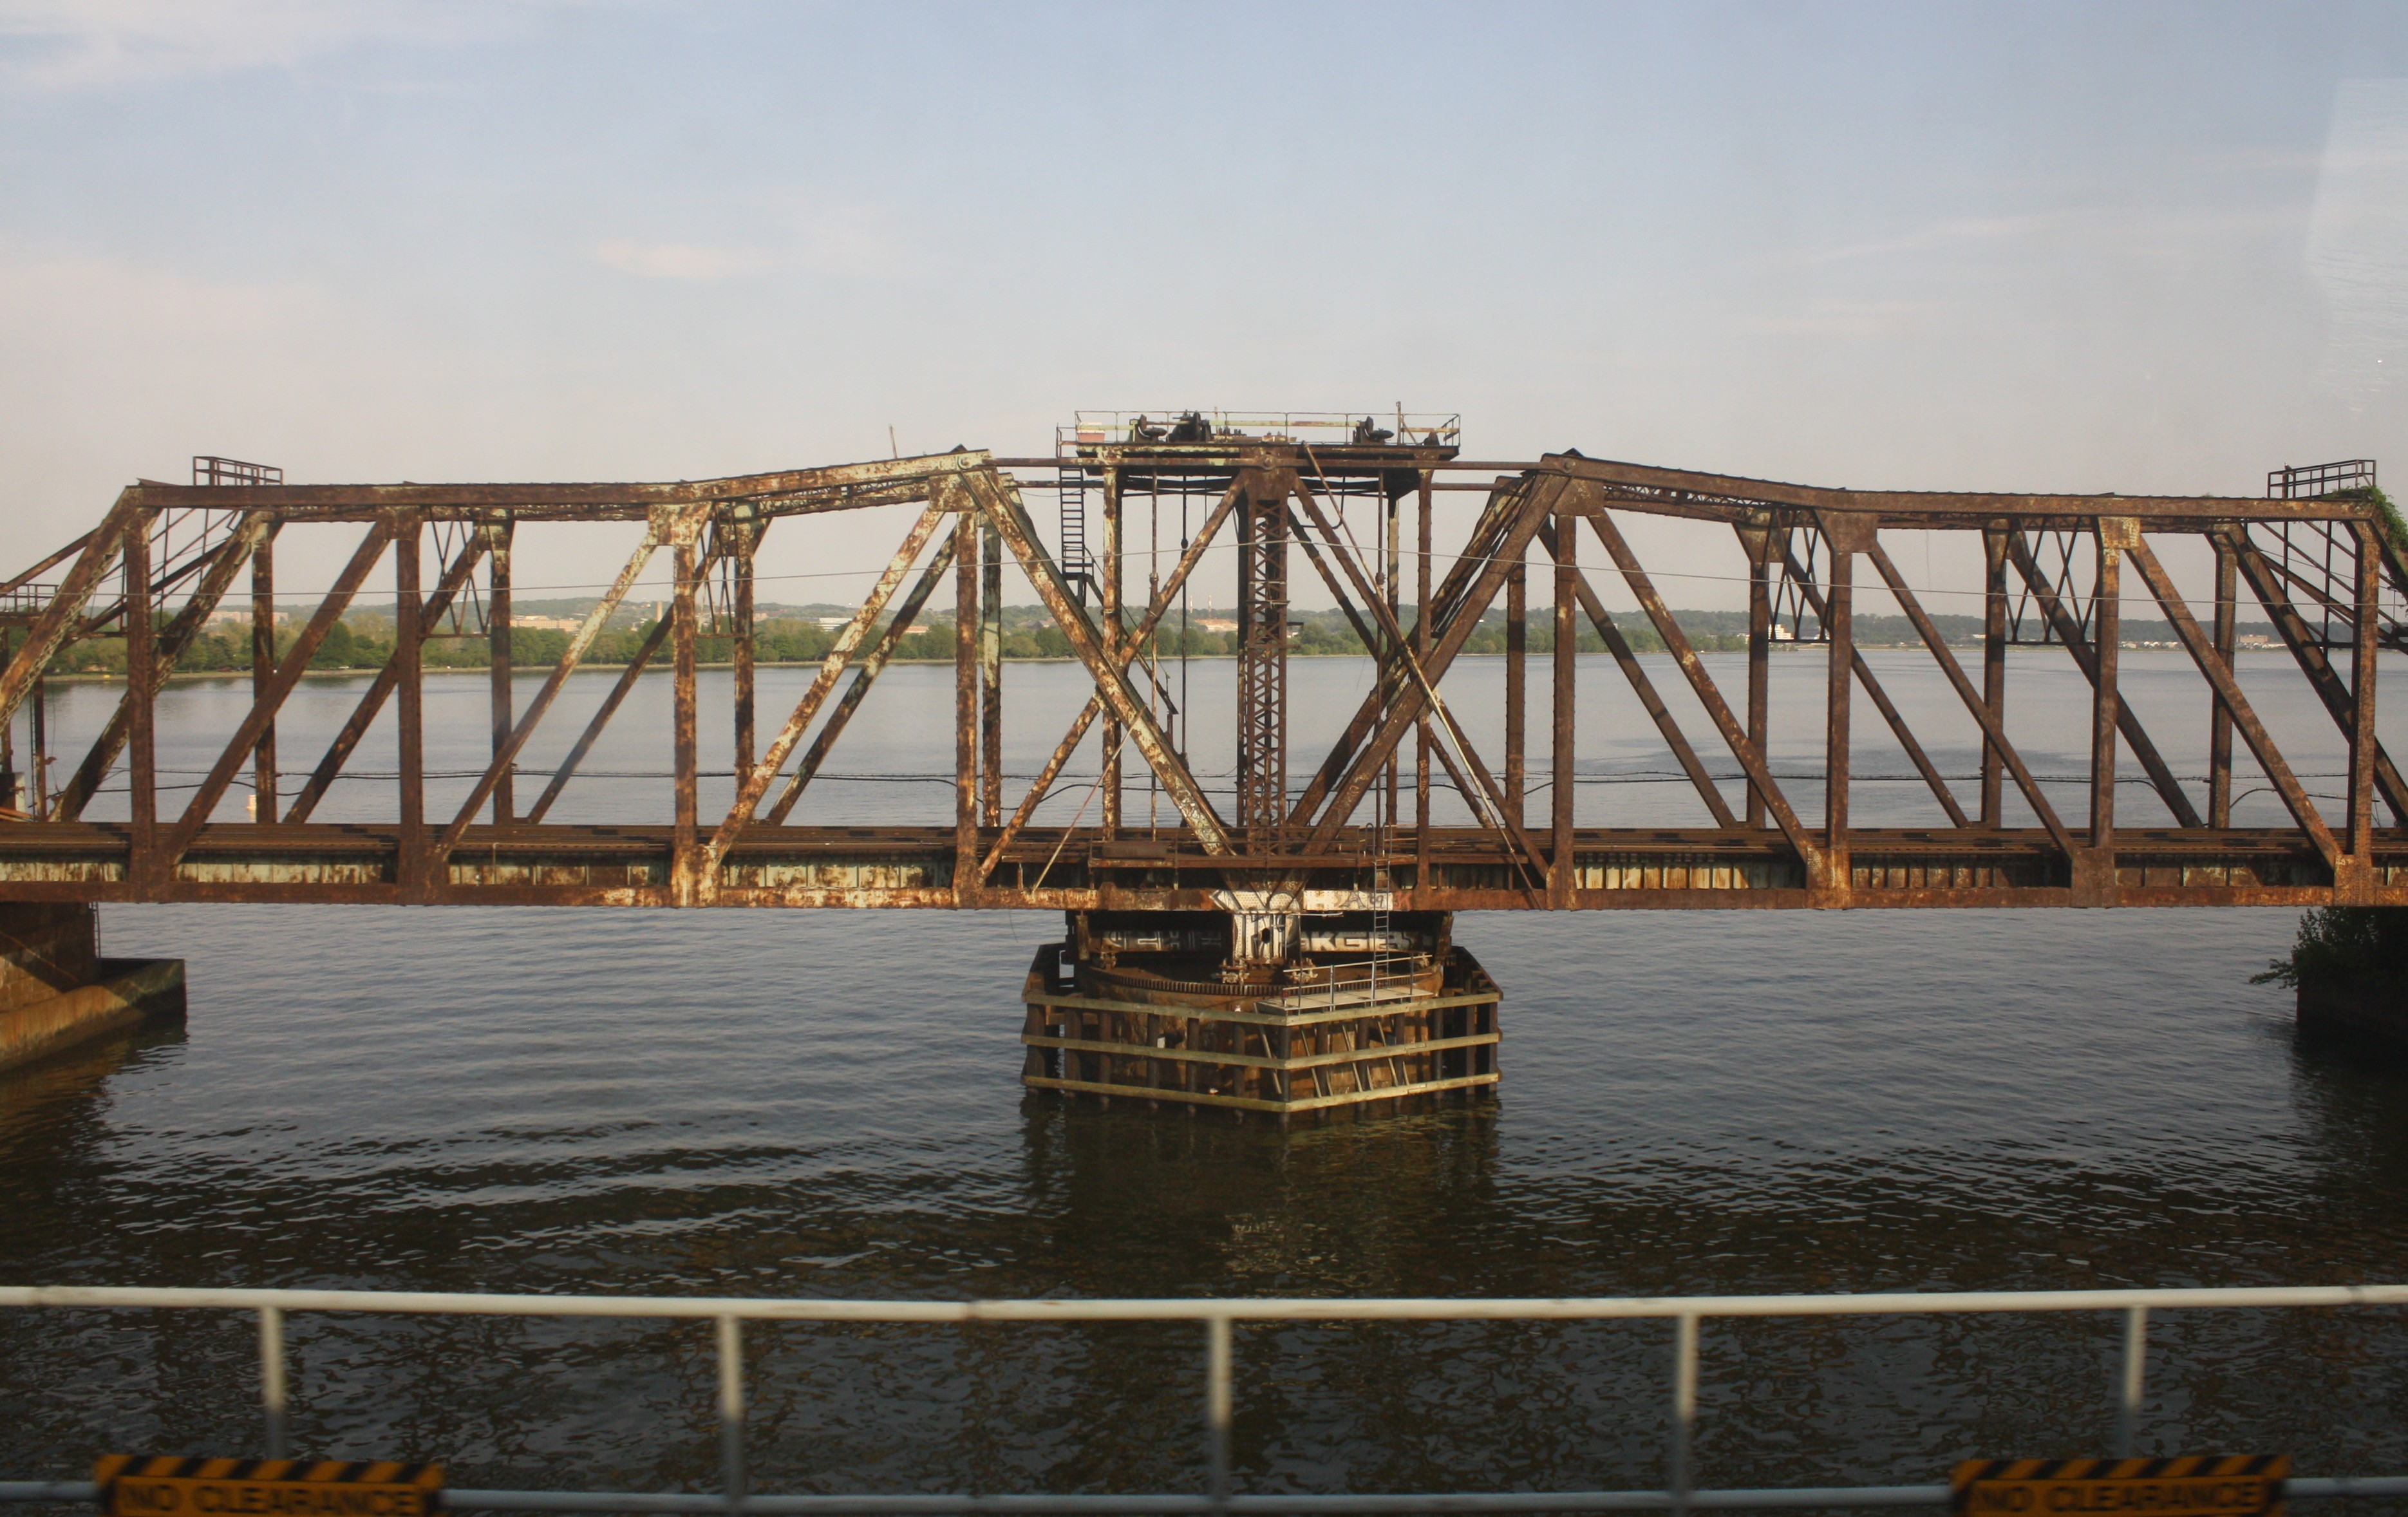 "By Elvert Barnes from Hyattsville MD, USA [<a href=""https://creativecommons.org/licenses/by-sa/2.0"">CC BY-SA 2.0</a>], <a href=""https://commons.wikimedia.org/wiki/File%3AWashington_Railway_Long_Bridge_at_14th_Street_Bridge_Complex_from_WMATA_Yellow_Line_-_23_April_2010.jpg"">via Wikimedia Commons</a>"